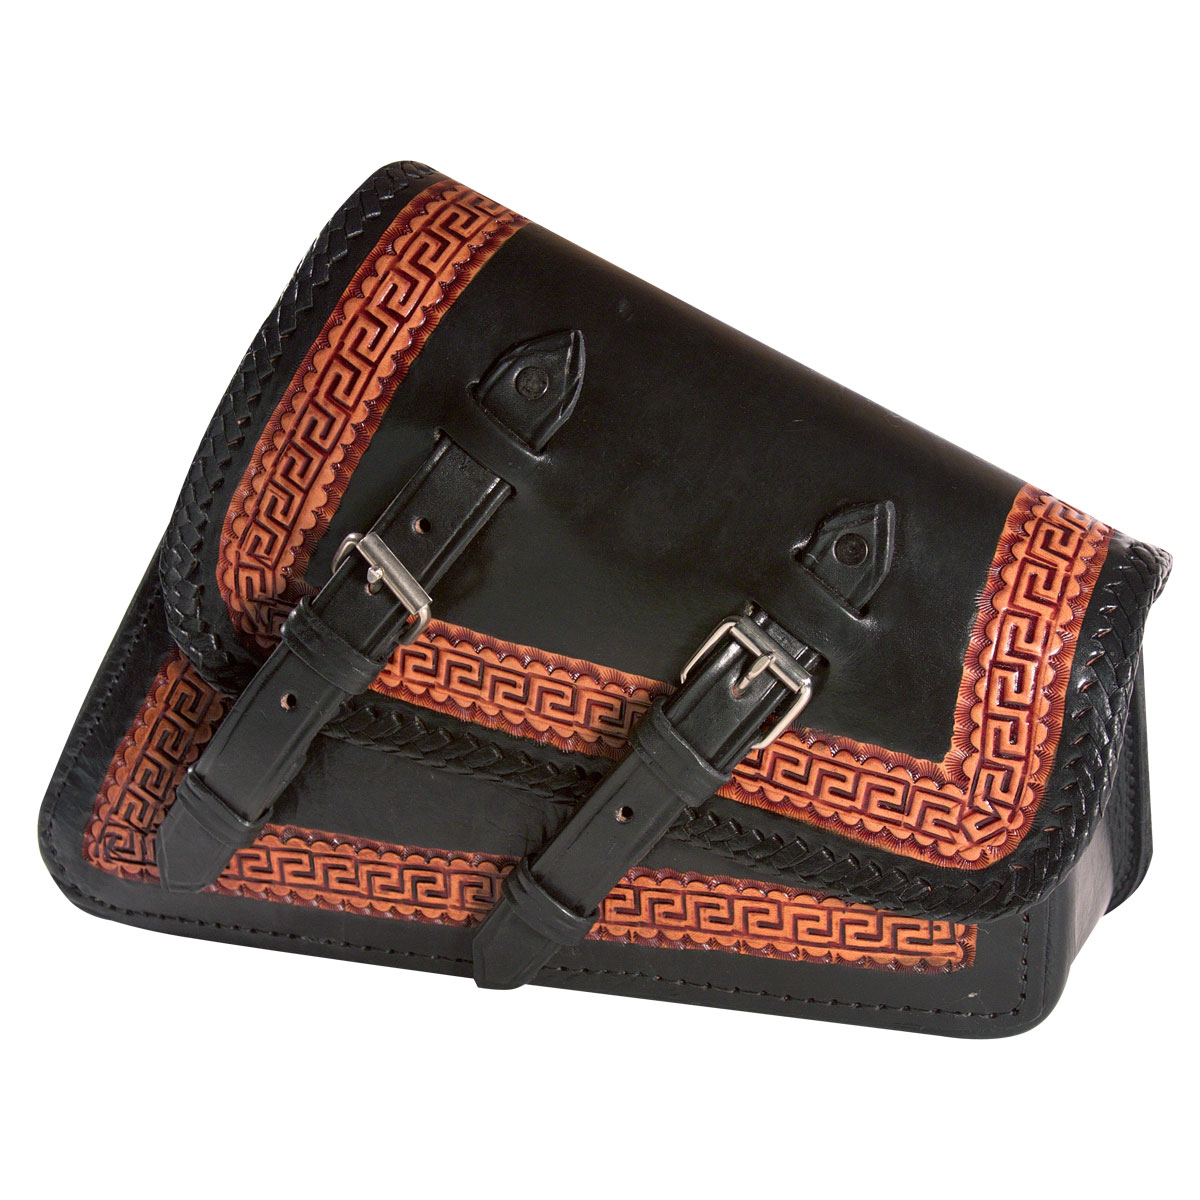 Viclista Leather Swing Arm Bag by RAA Leather